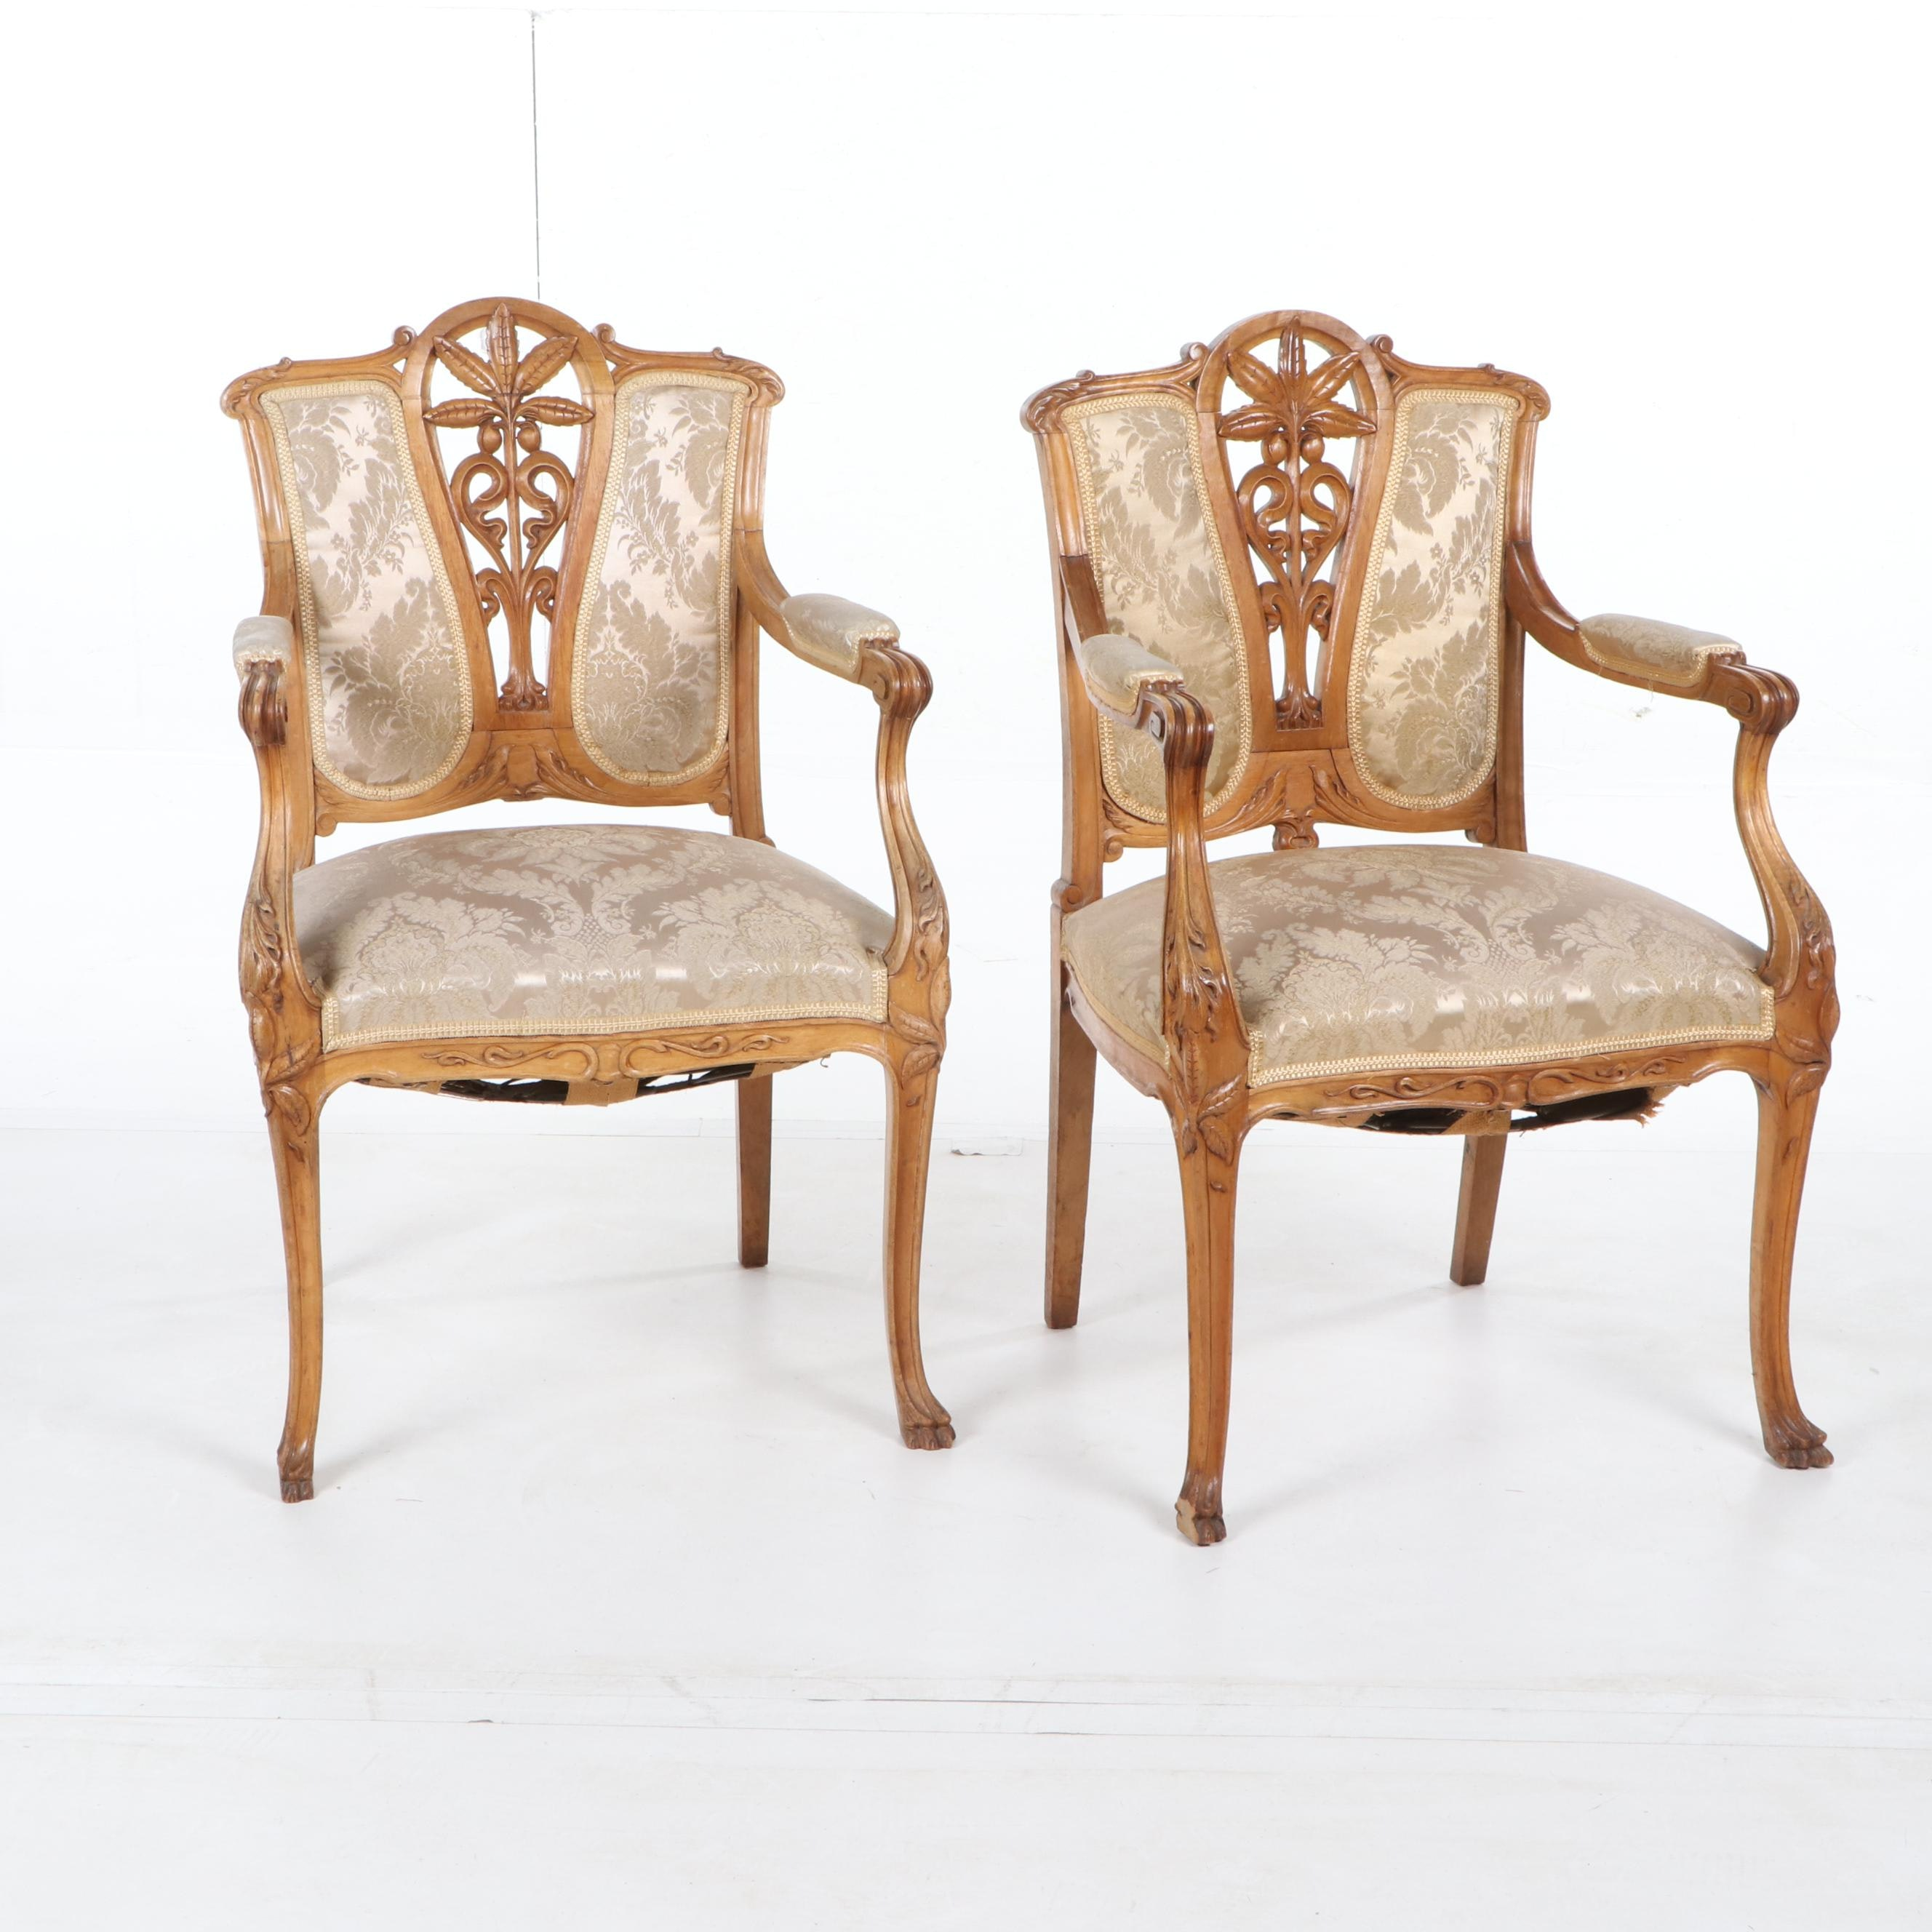 Louis XV Style Birch Frame Upholstered Armchairs, Early 20th Century